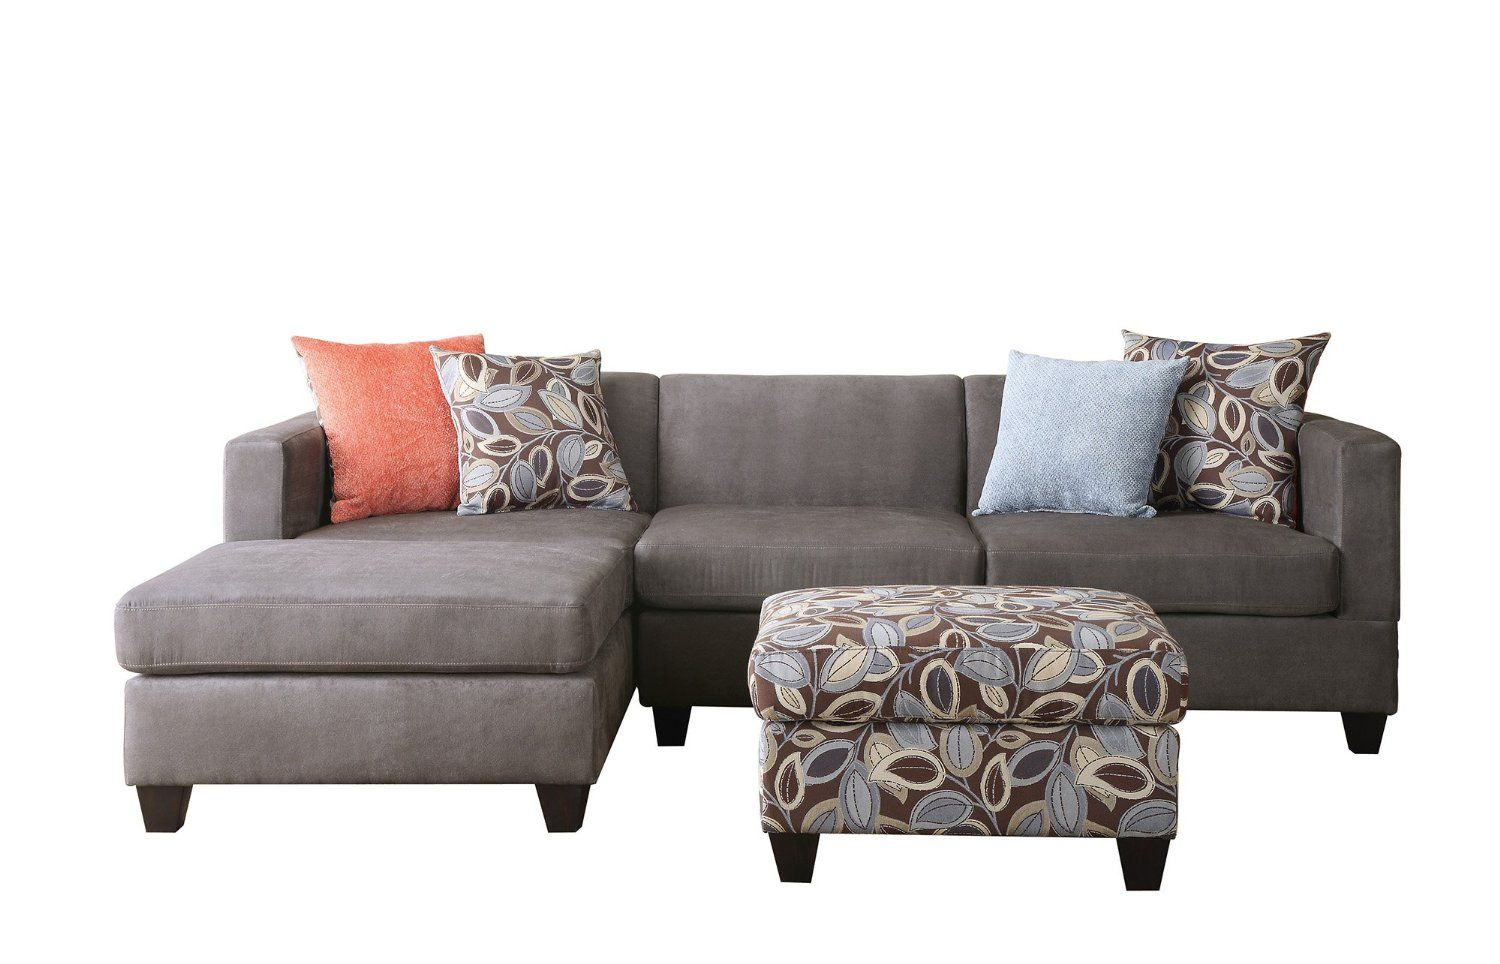 Modern Reversible Sectional Sofa With Fl Printed Ottoman Charcoal Grey Furniture